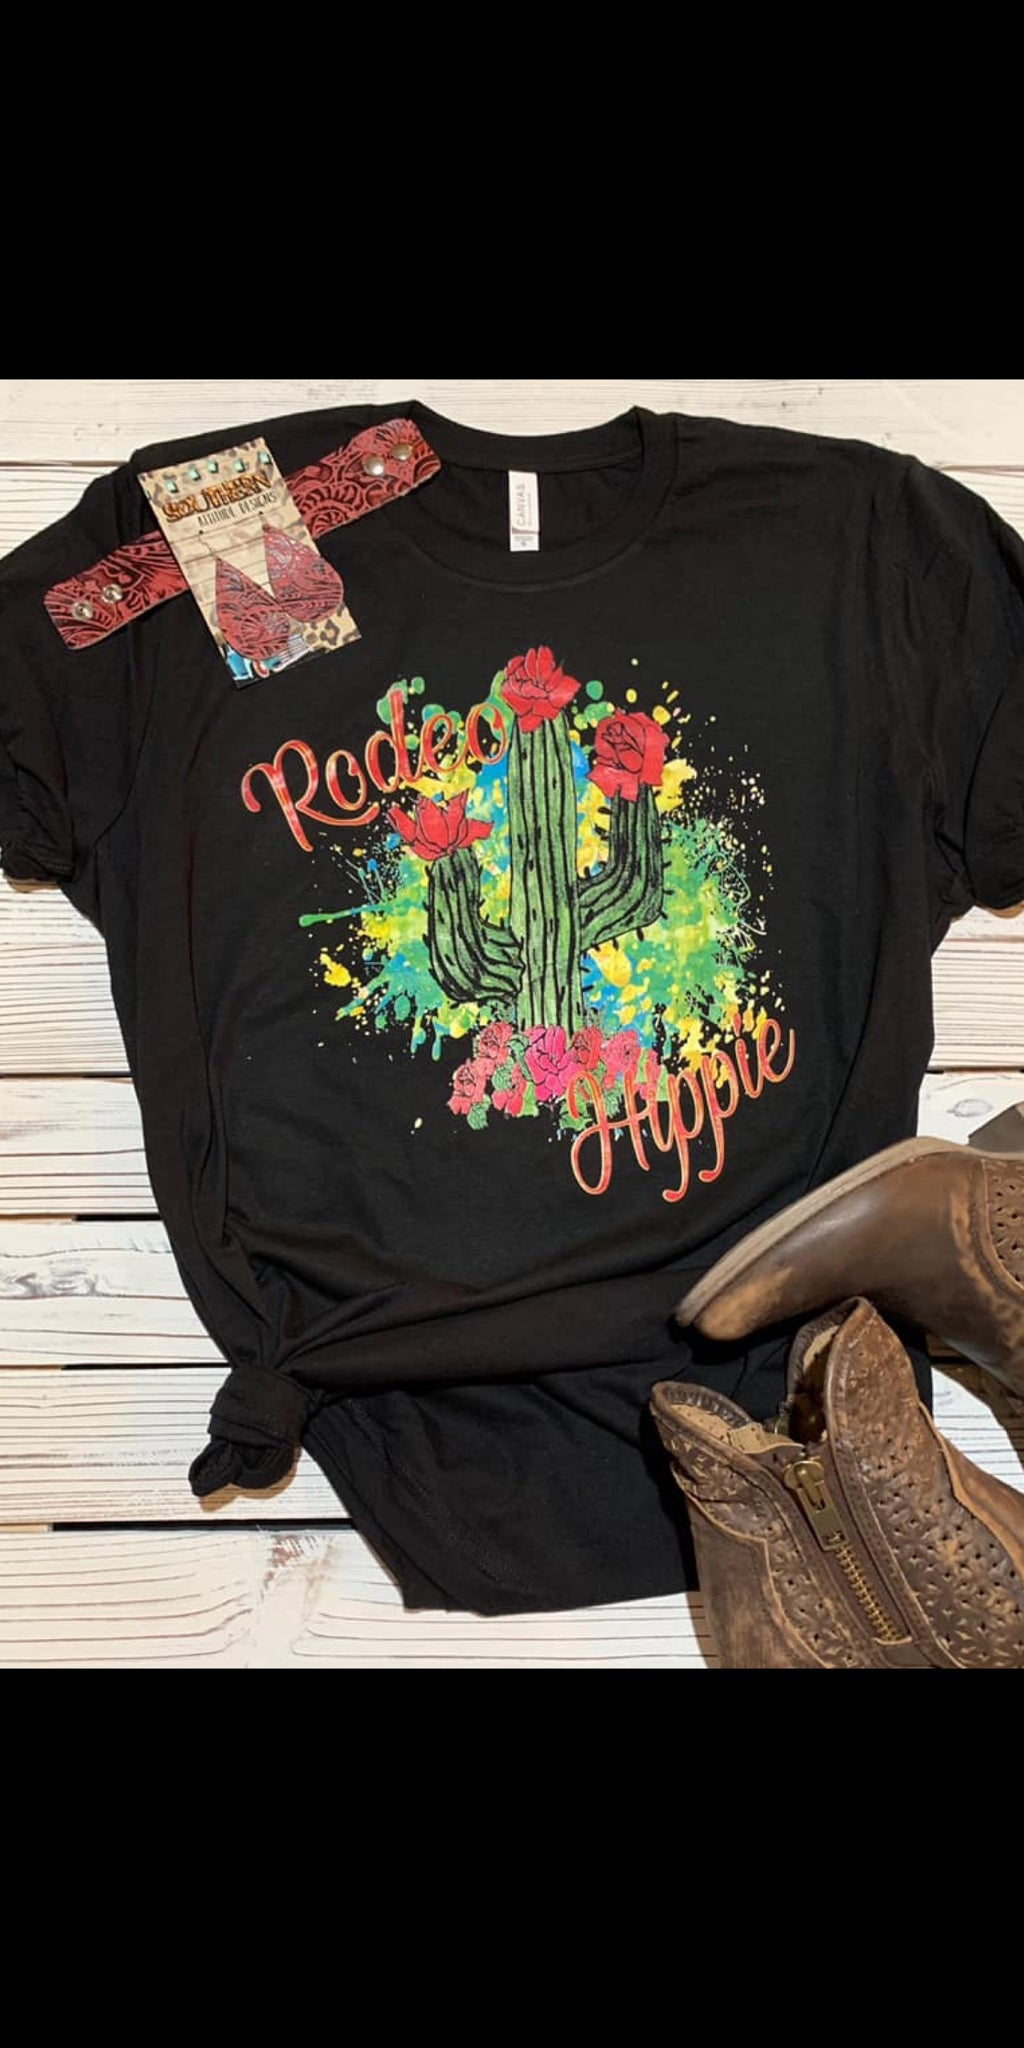 Rodeo Hippie Top - Also in Plus Size